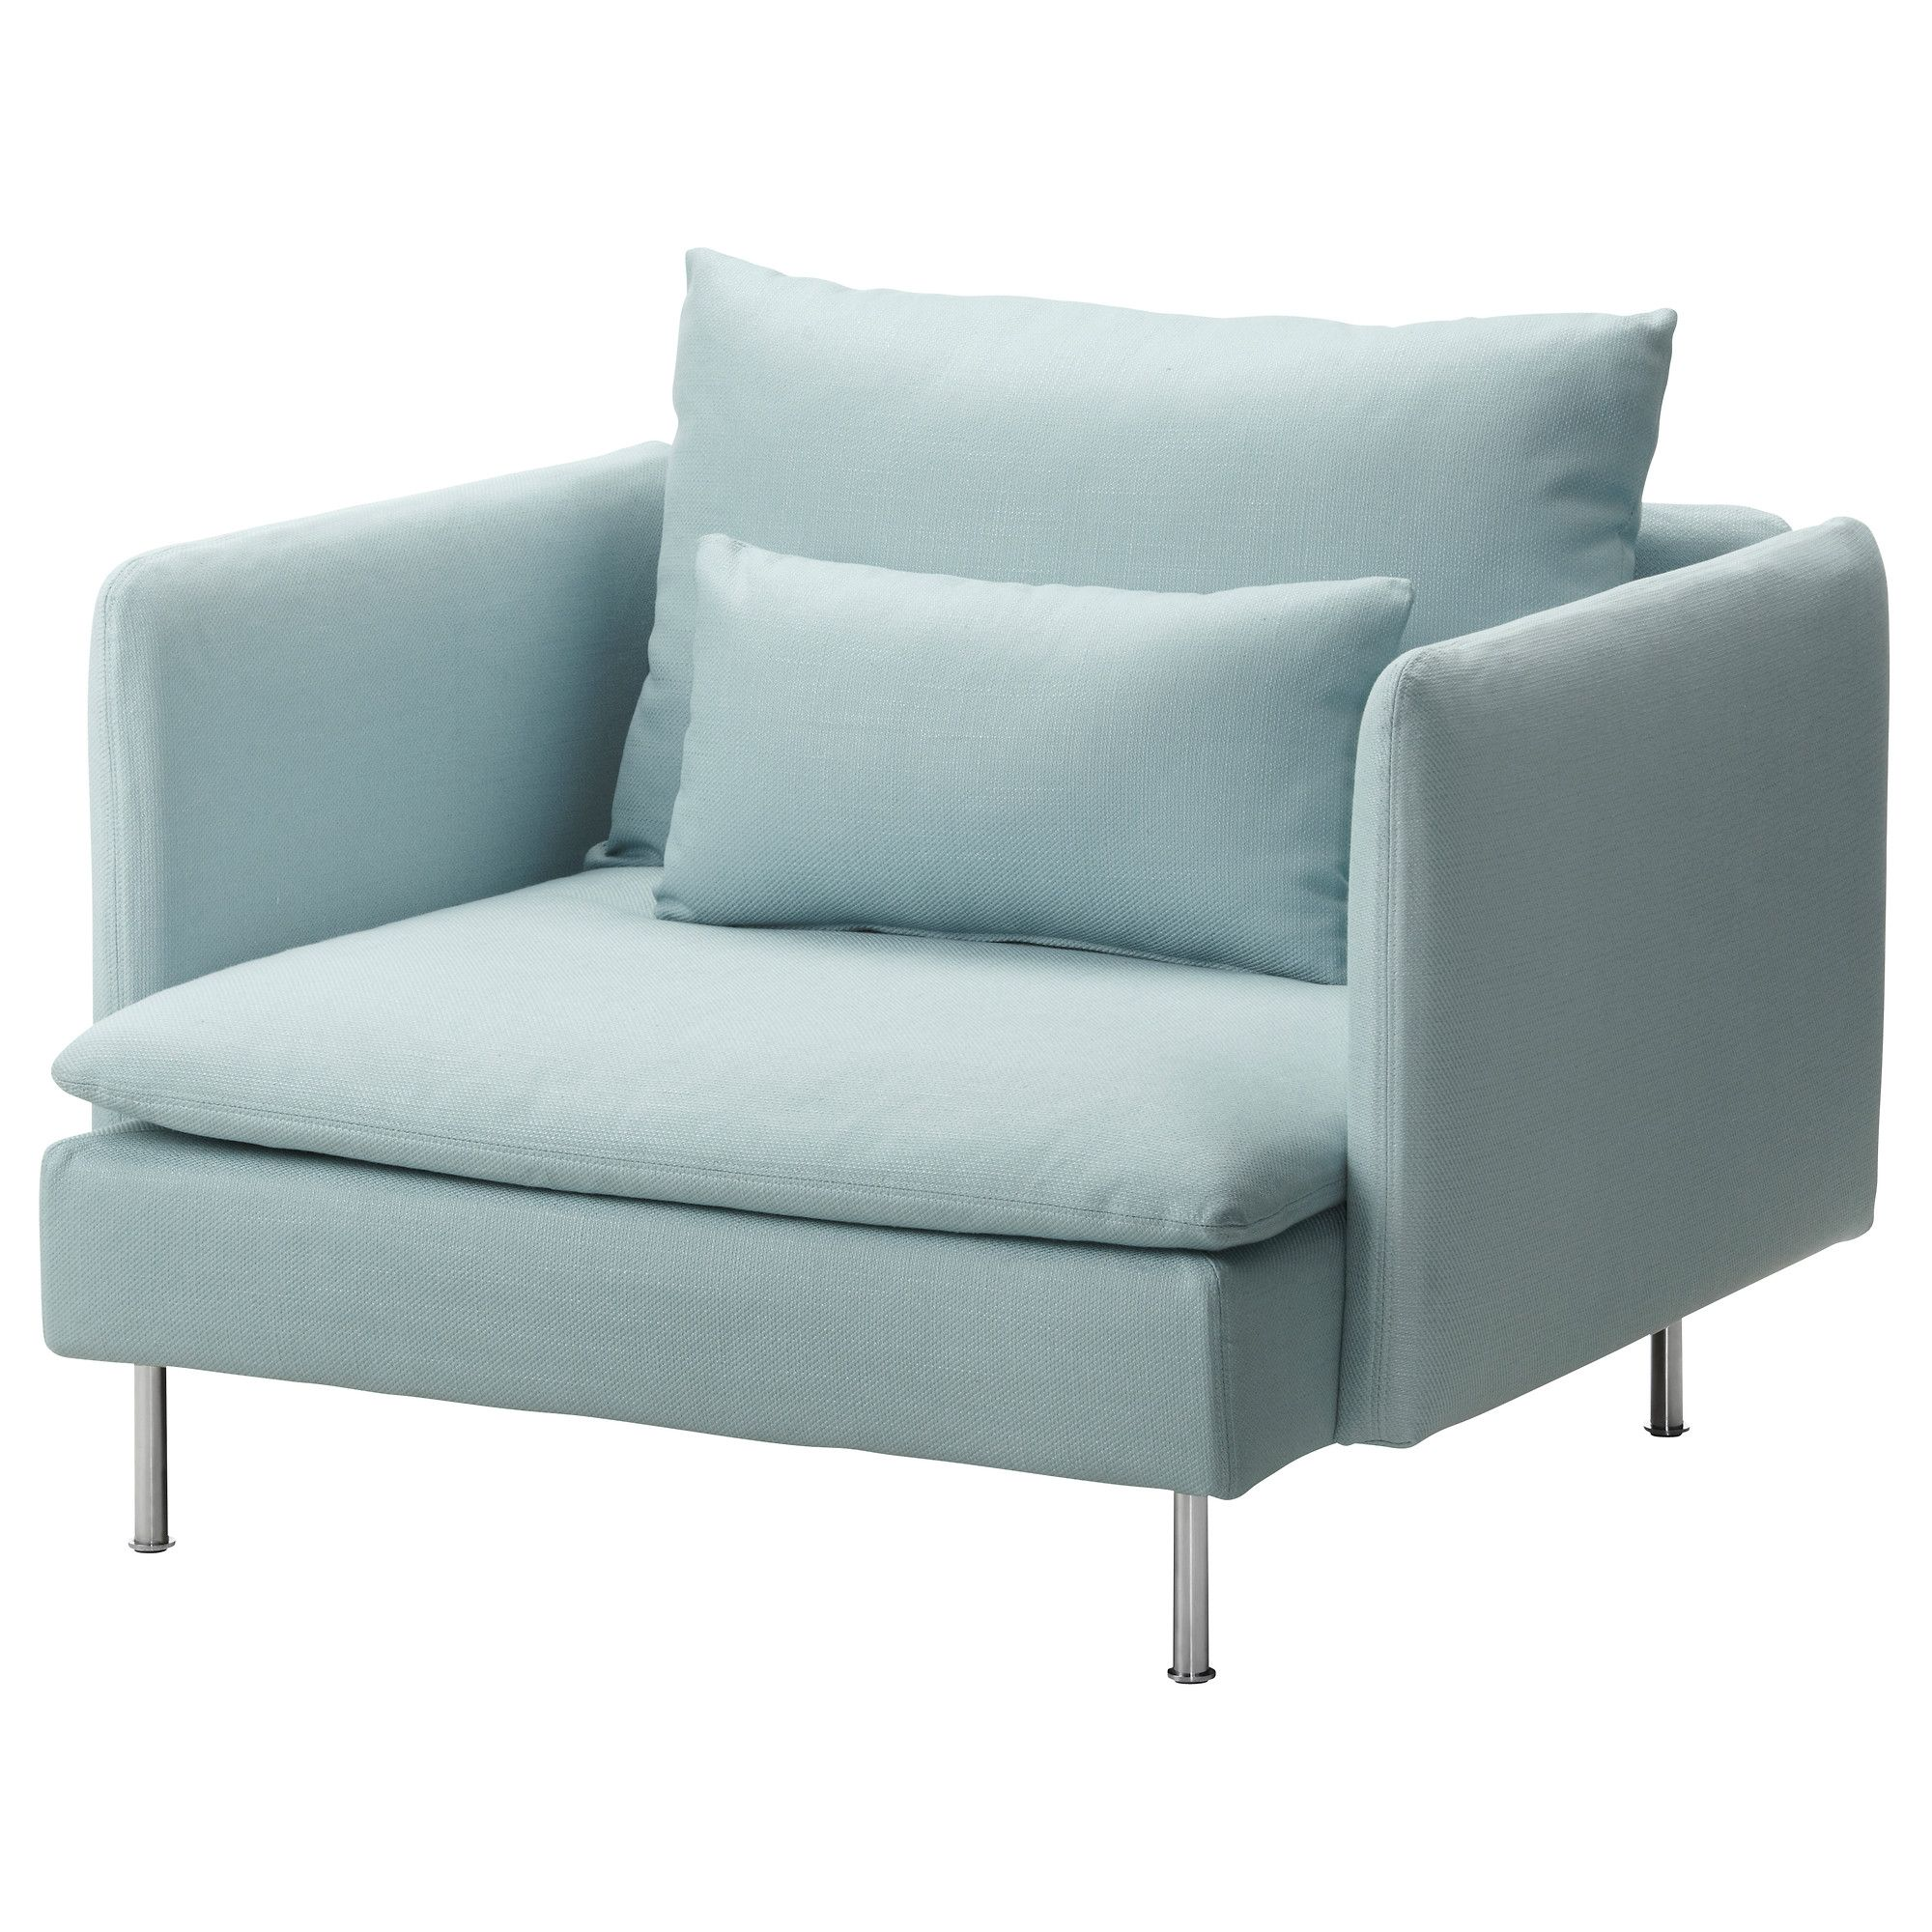 S 214 Derhamn Chair Isefall Light Turquoise Ikea I Would